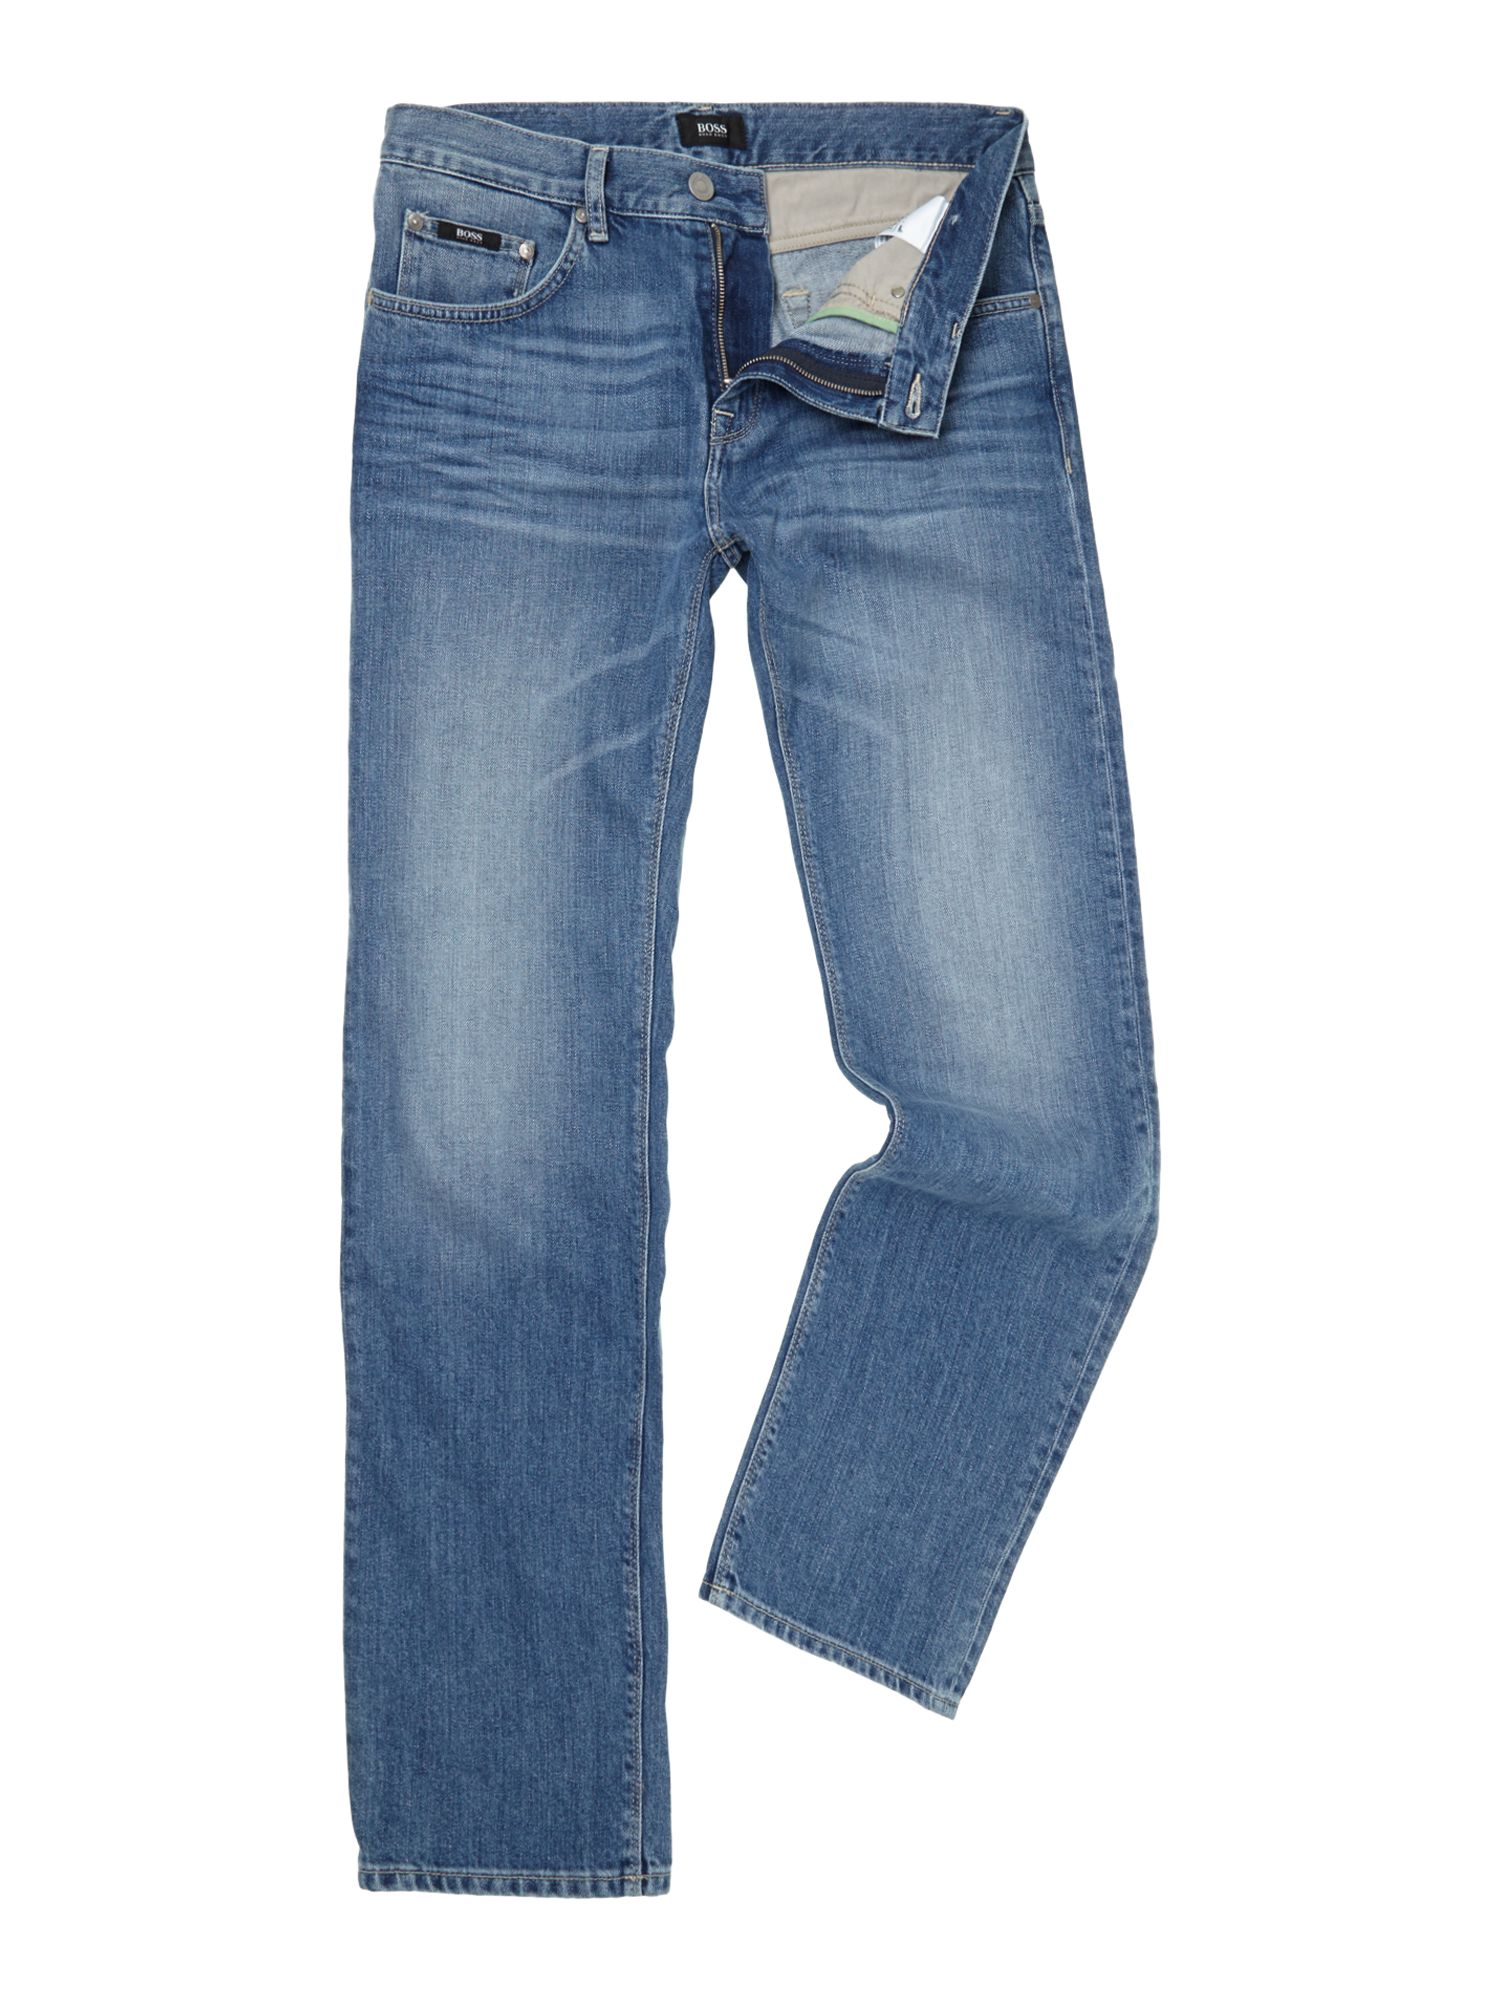 Maine wash straight leg jean